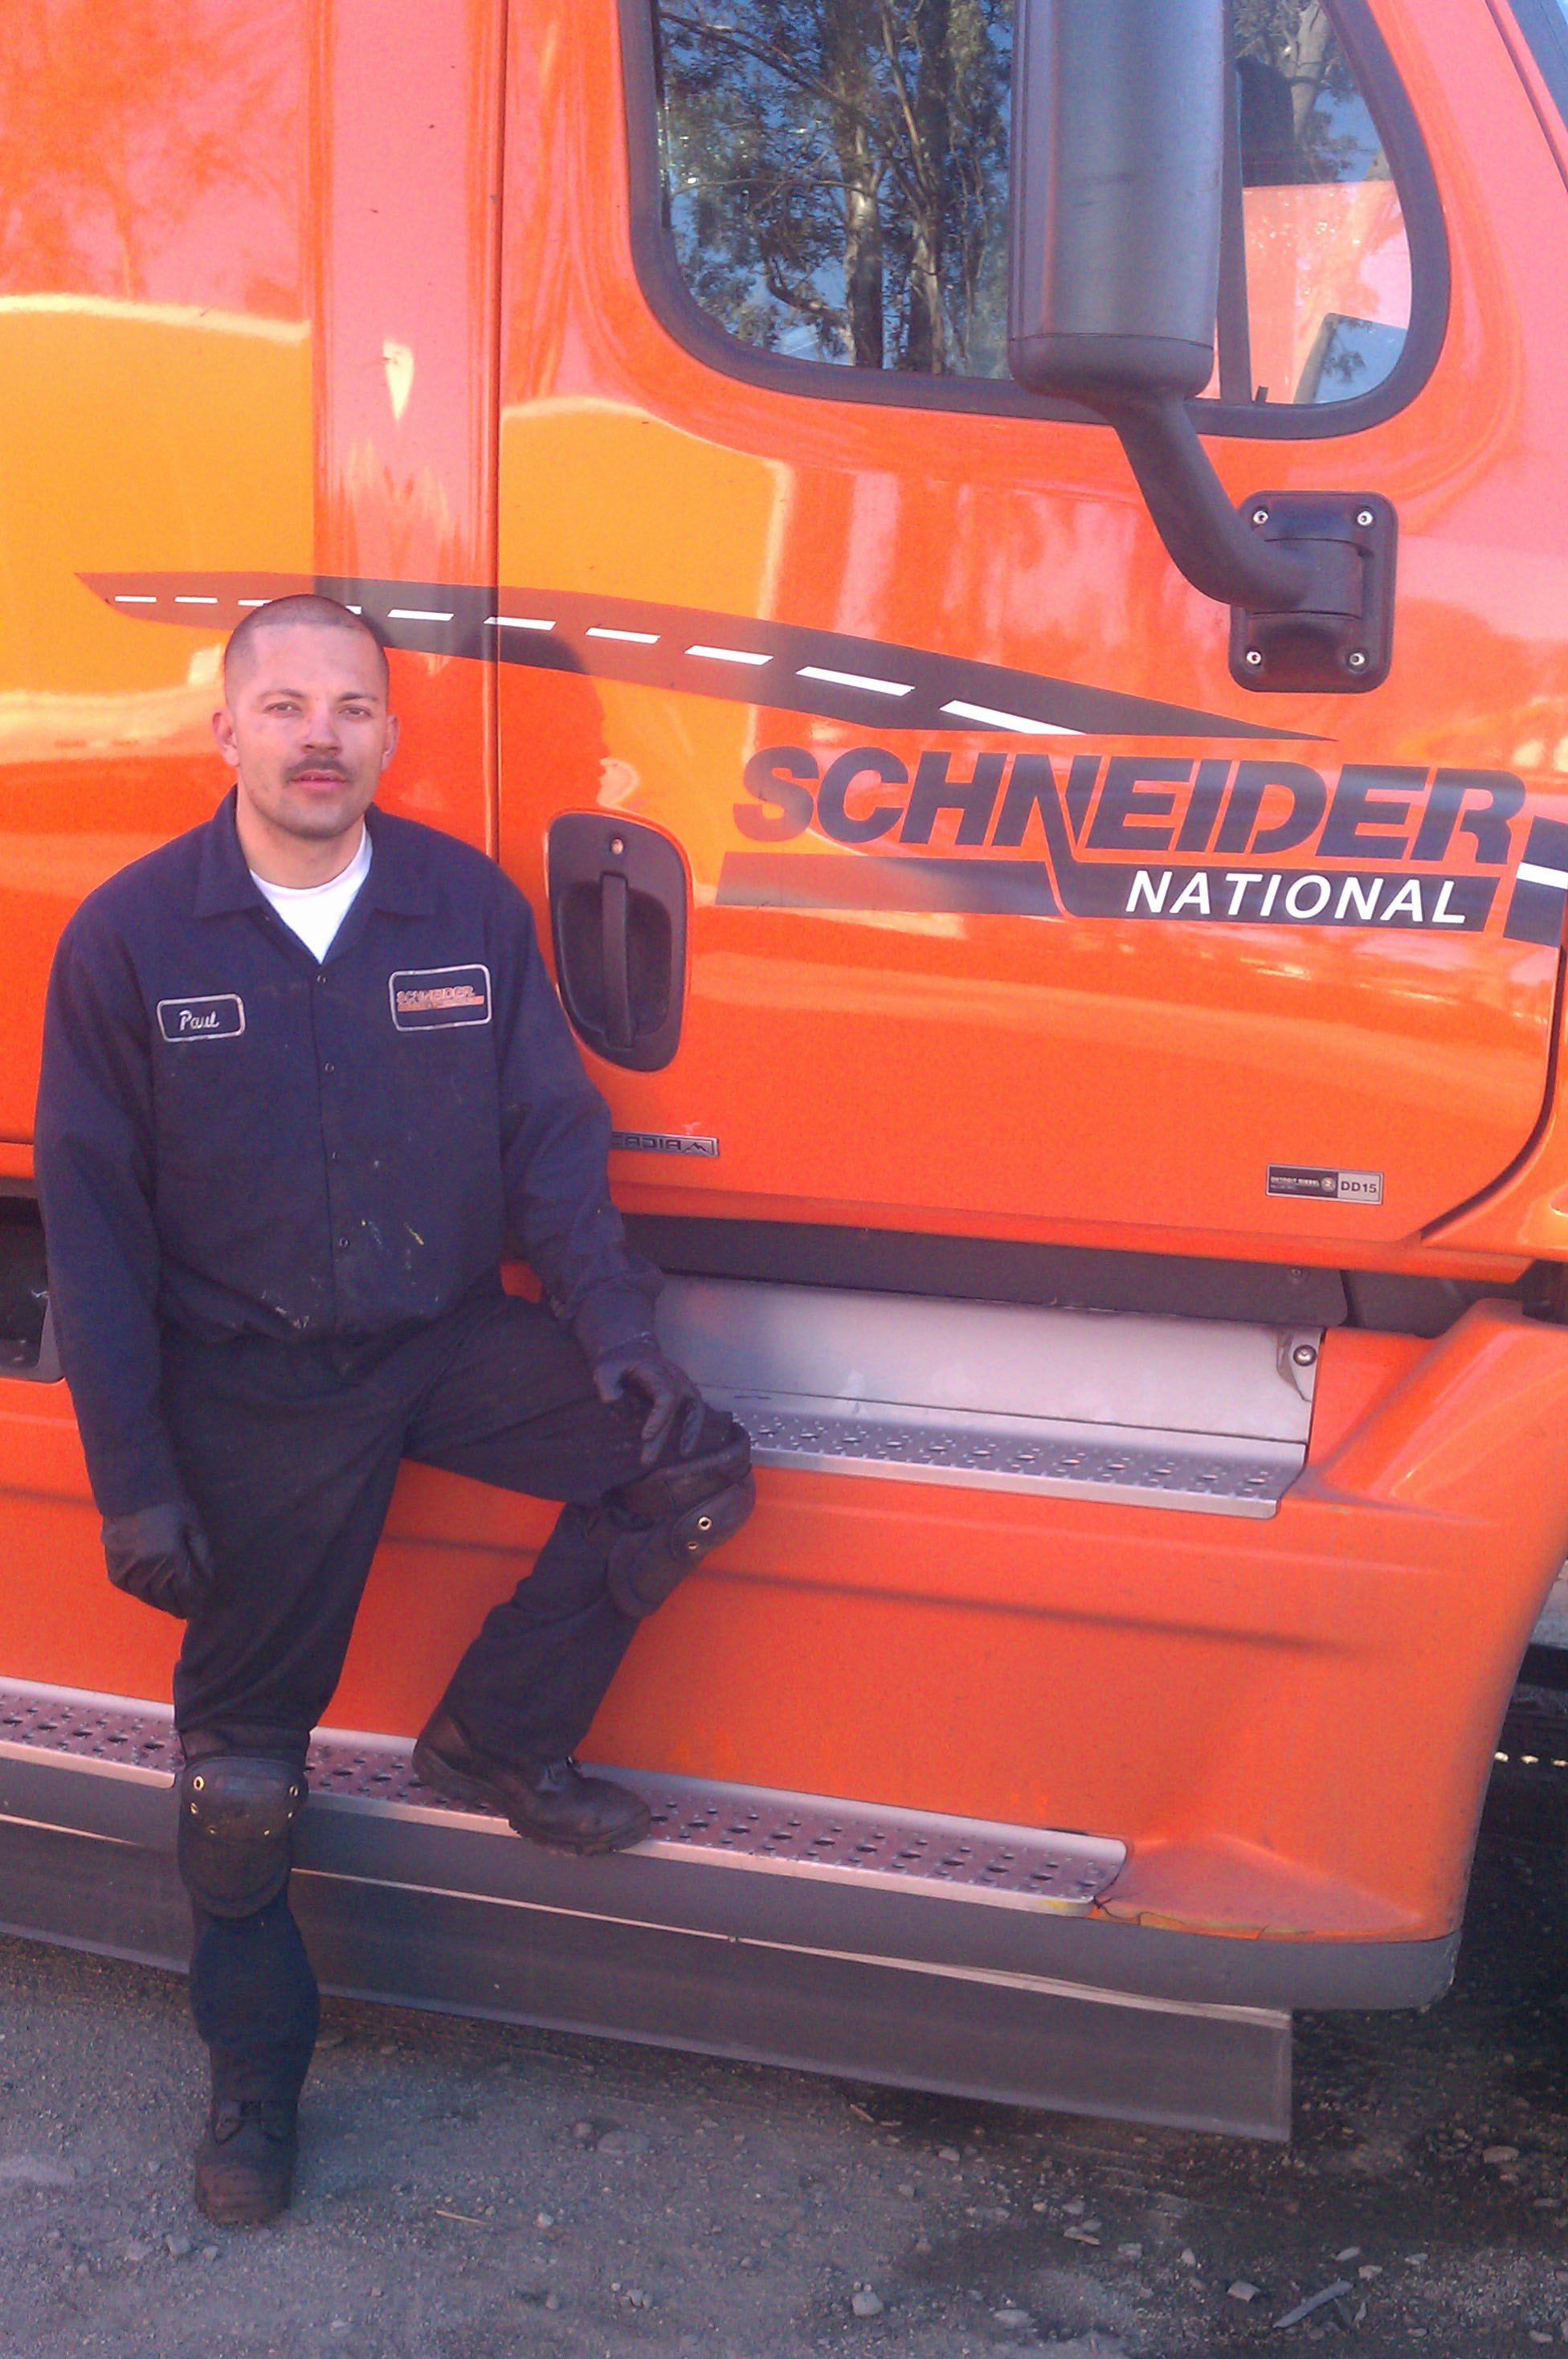 student paul prado poses next to an orange schneider semi-truck